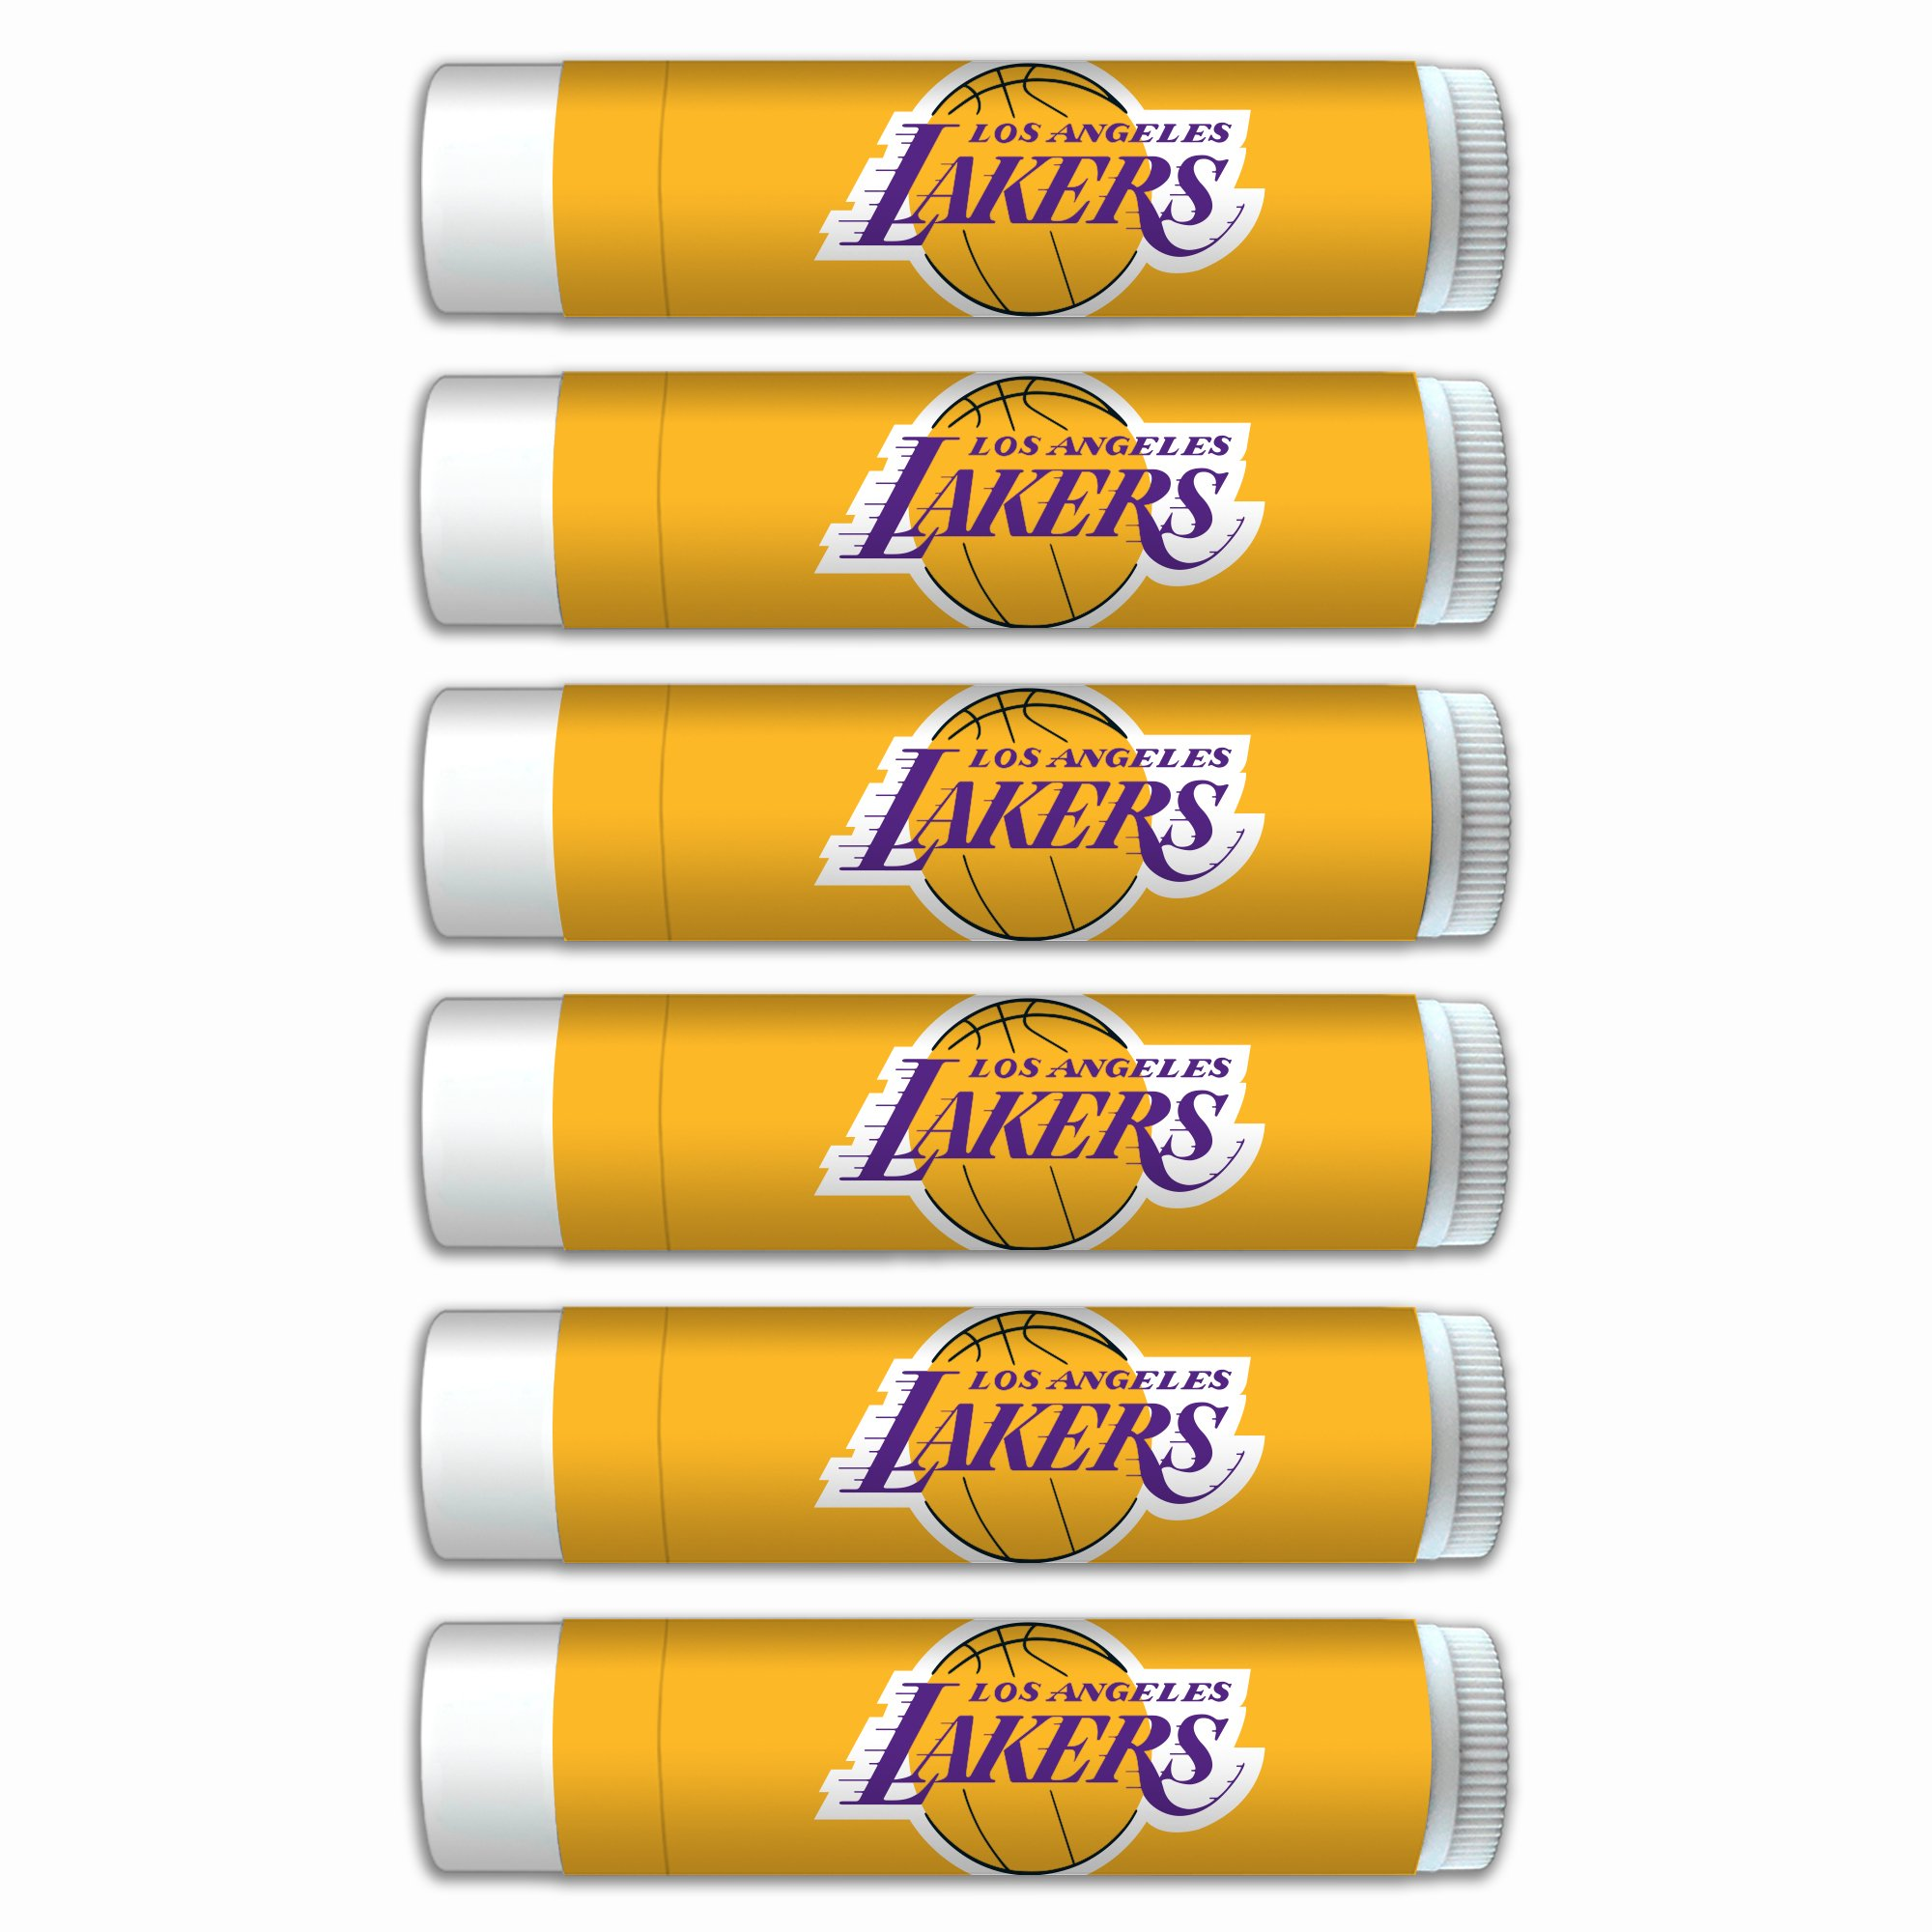 $2.00 OFF LA Lakers Smooth Mint Lip Balm 6-Pack with SPF 15, Beeswax, Coconut Oil, Aloe Vera. NBA Basketball Gifts for Men and Women, Mother's Day, Fathers Day, Easter, Stocking Stuffers